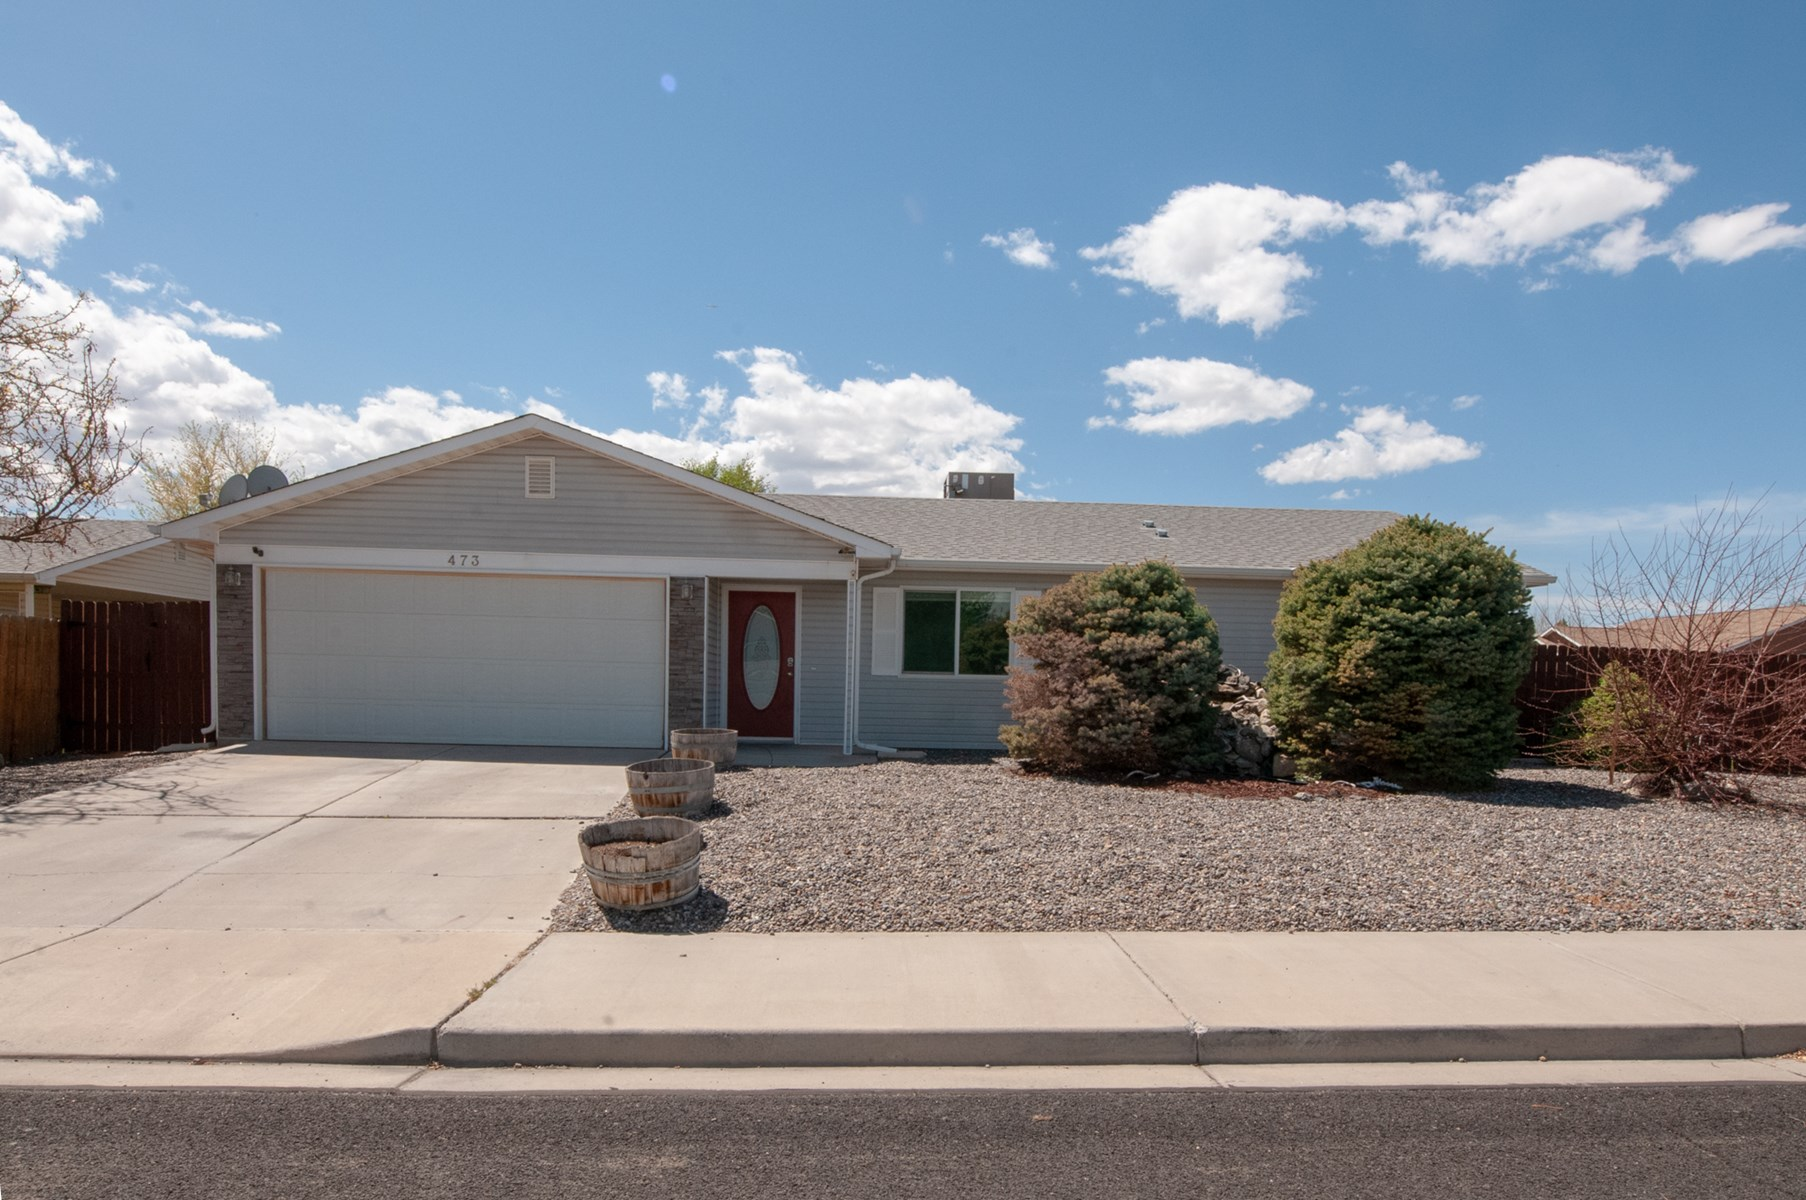 Ranch Style Home for Sale in Grand Junction, Colorado